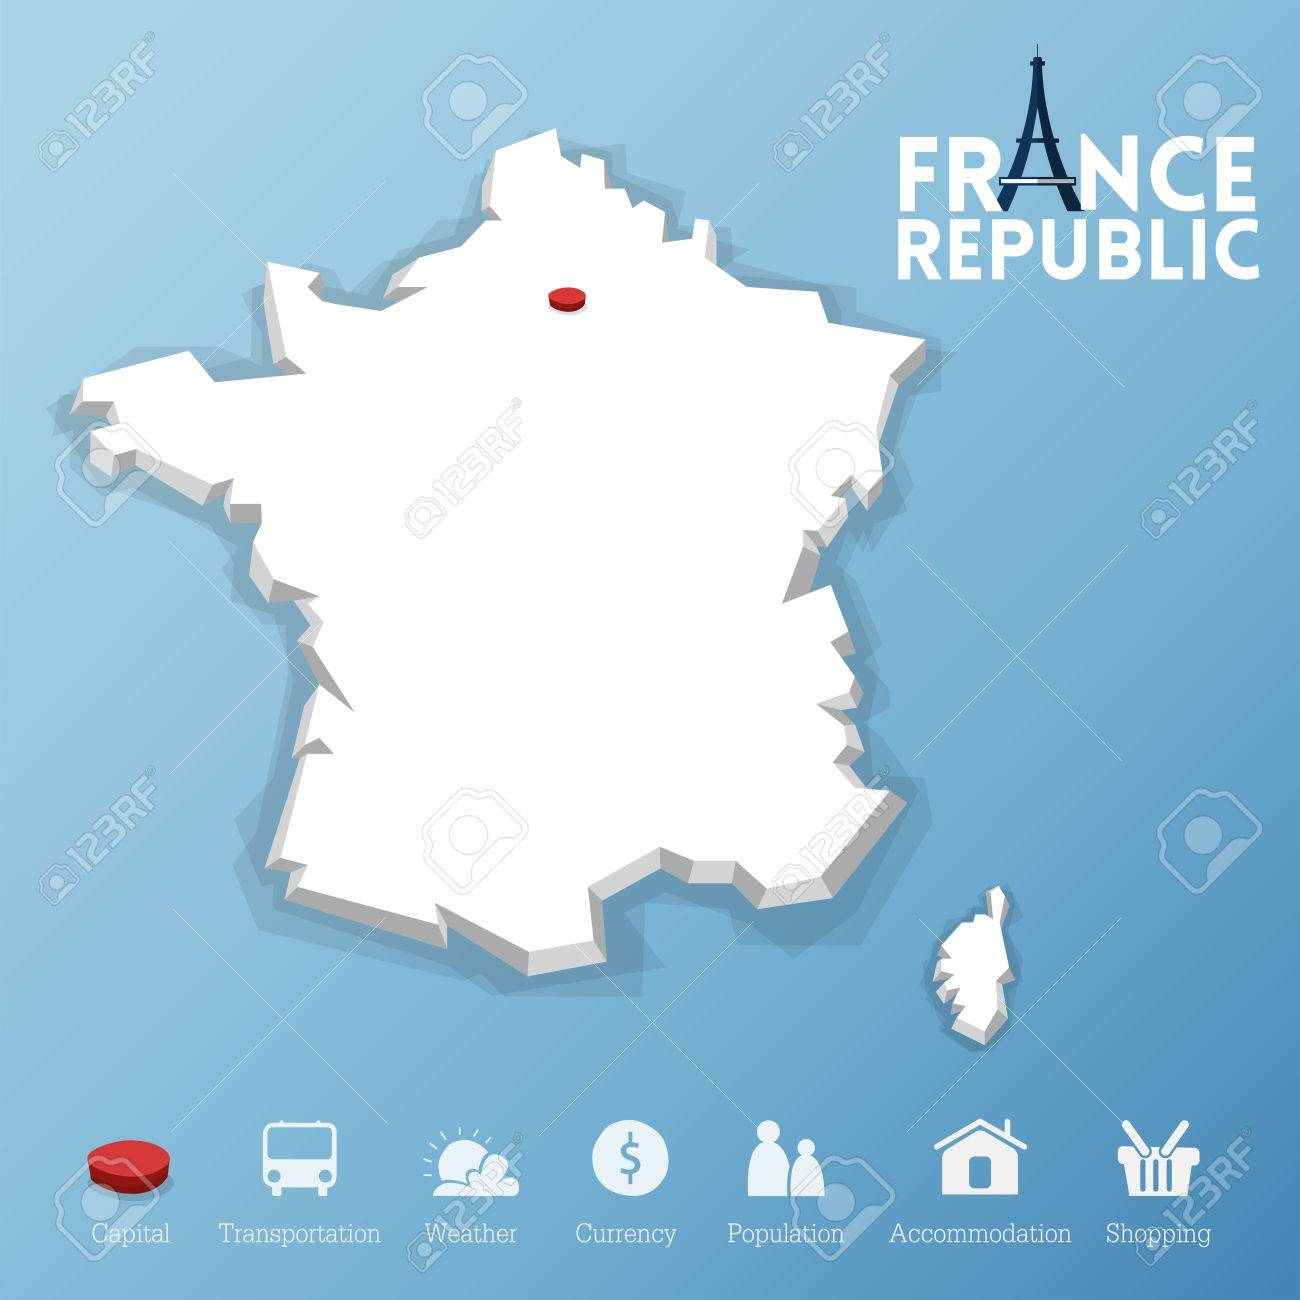 Paris City Republic Of France Map Including Tourism Icon In - Modern map of paris